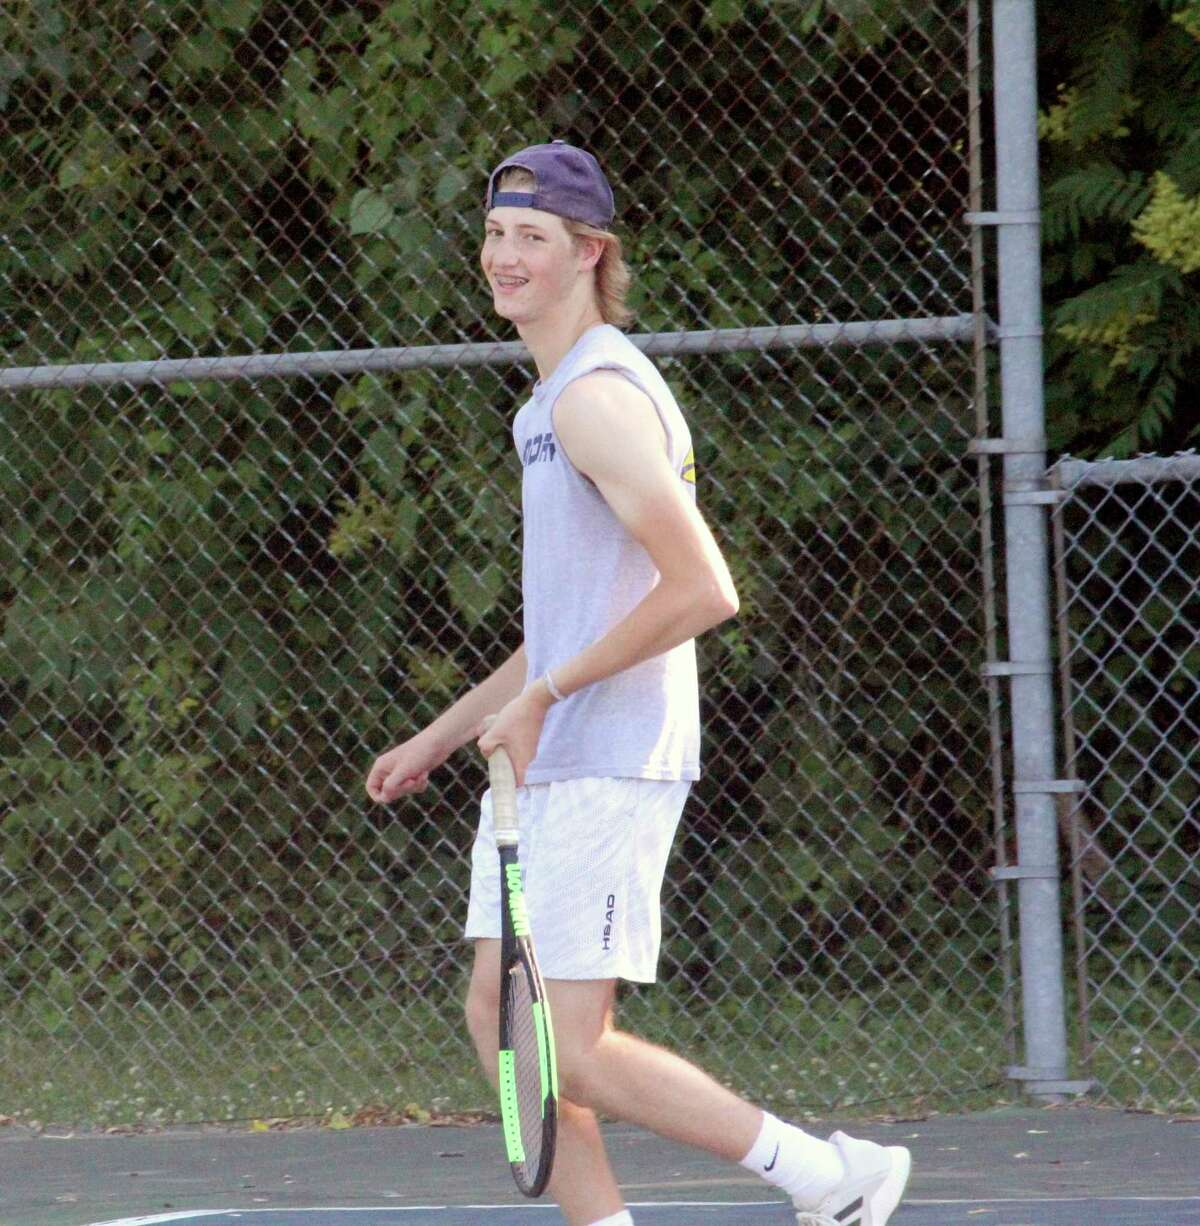 Spencer Olen, the lone senior on the Big Rapids tennis team, finishes his Cardinal career with 65 total wins. (Pioneer photo/John Raffel)